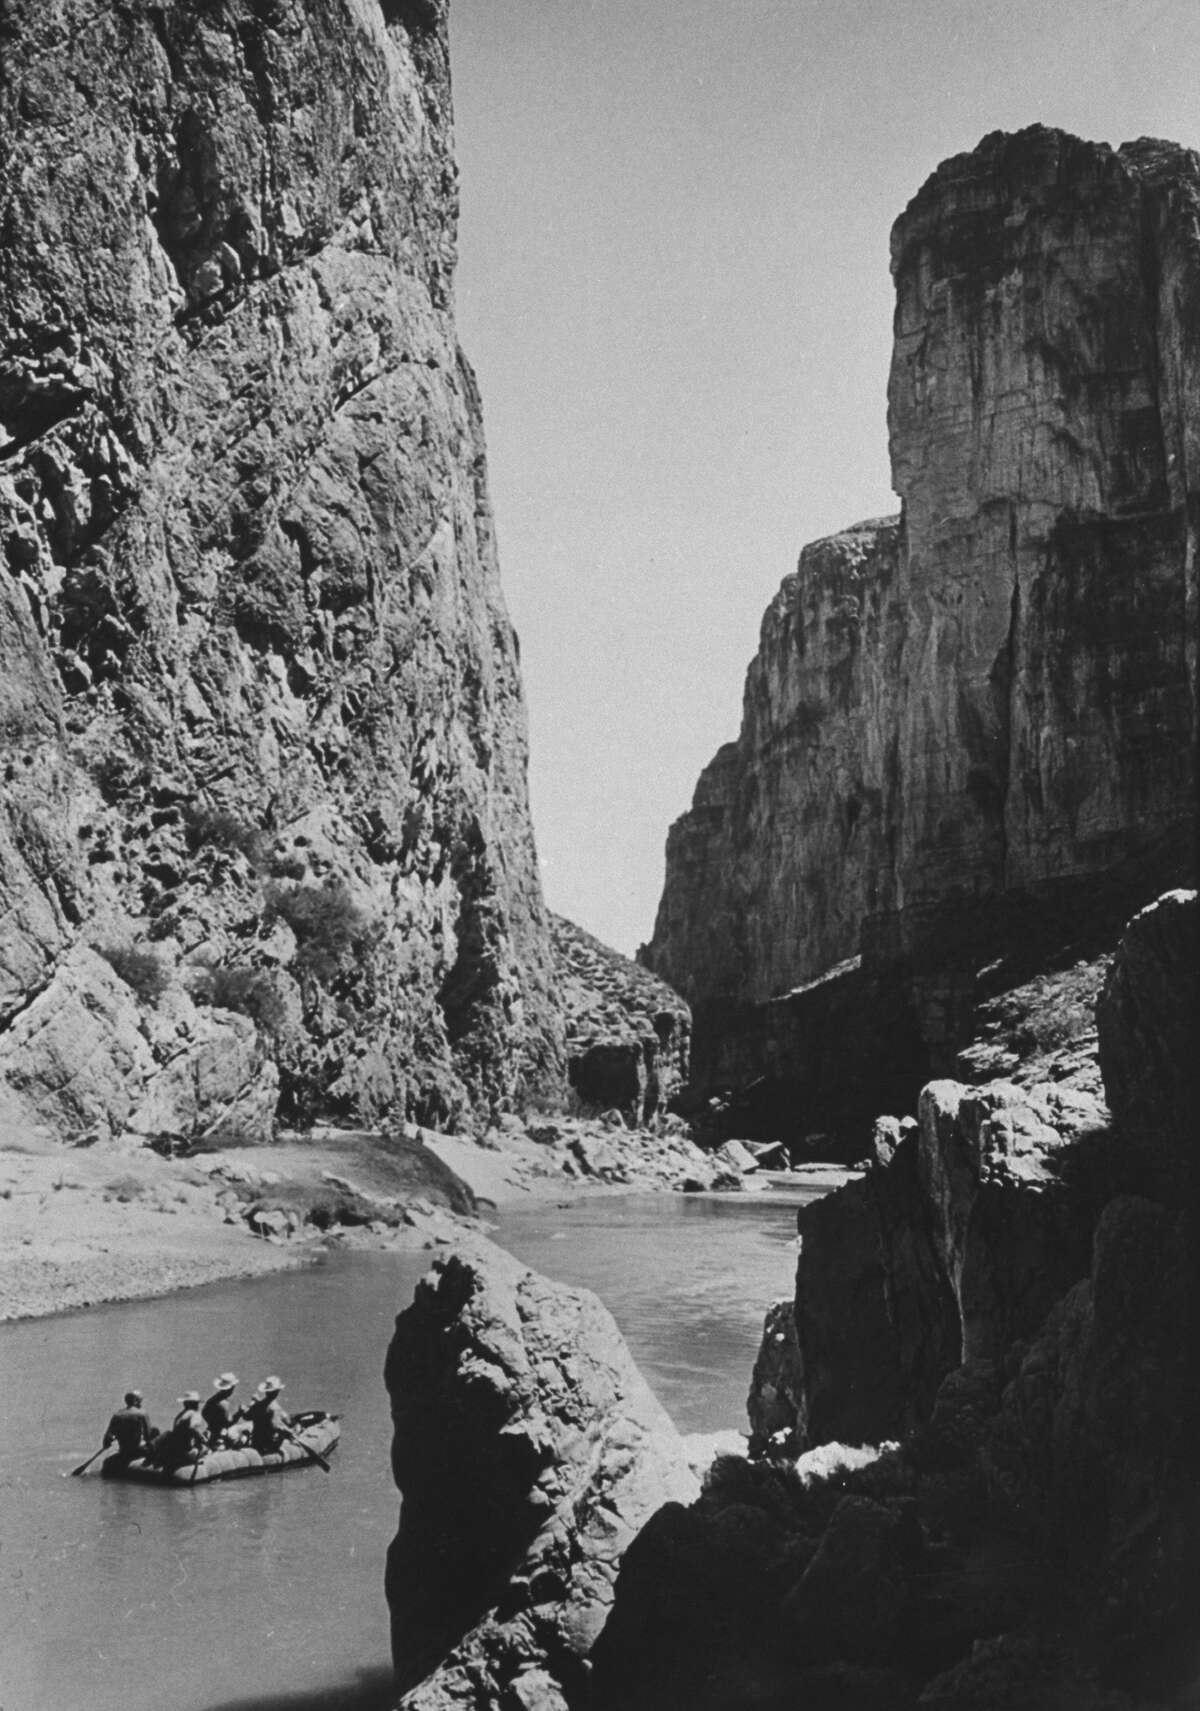 Excursionists paddle down Rio Grande River in Big Bend National Park.